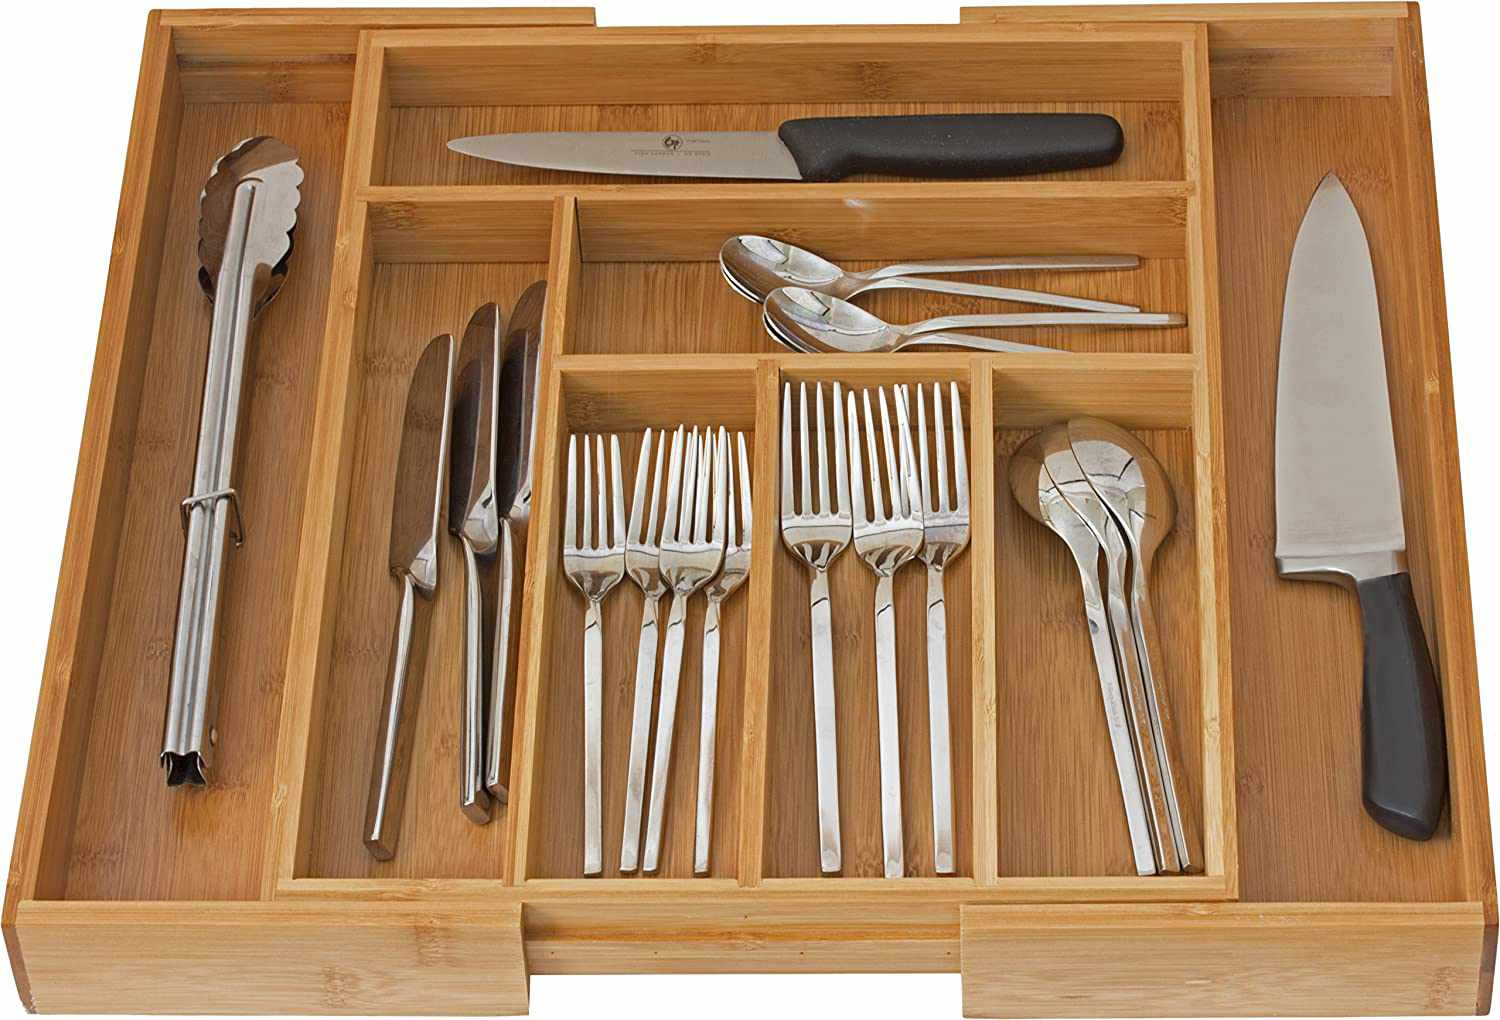 Home-it Expandable Cutlery Drawer Organizer